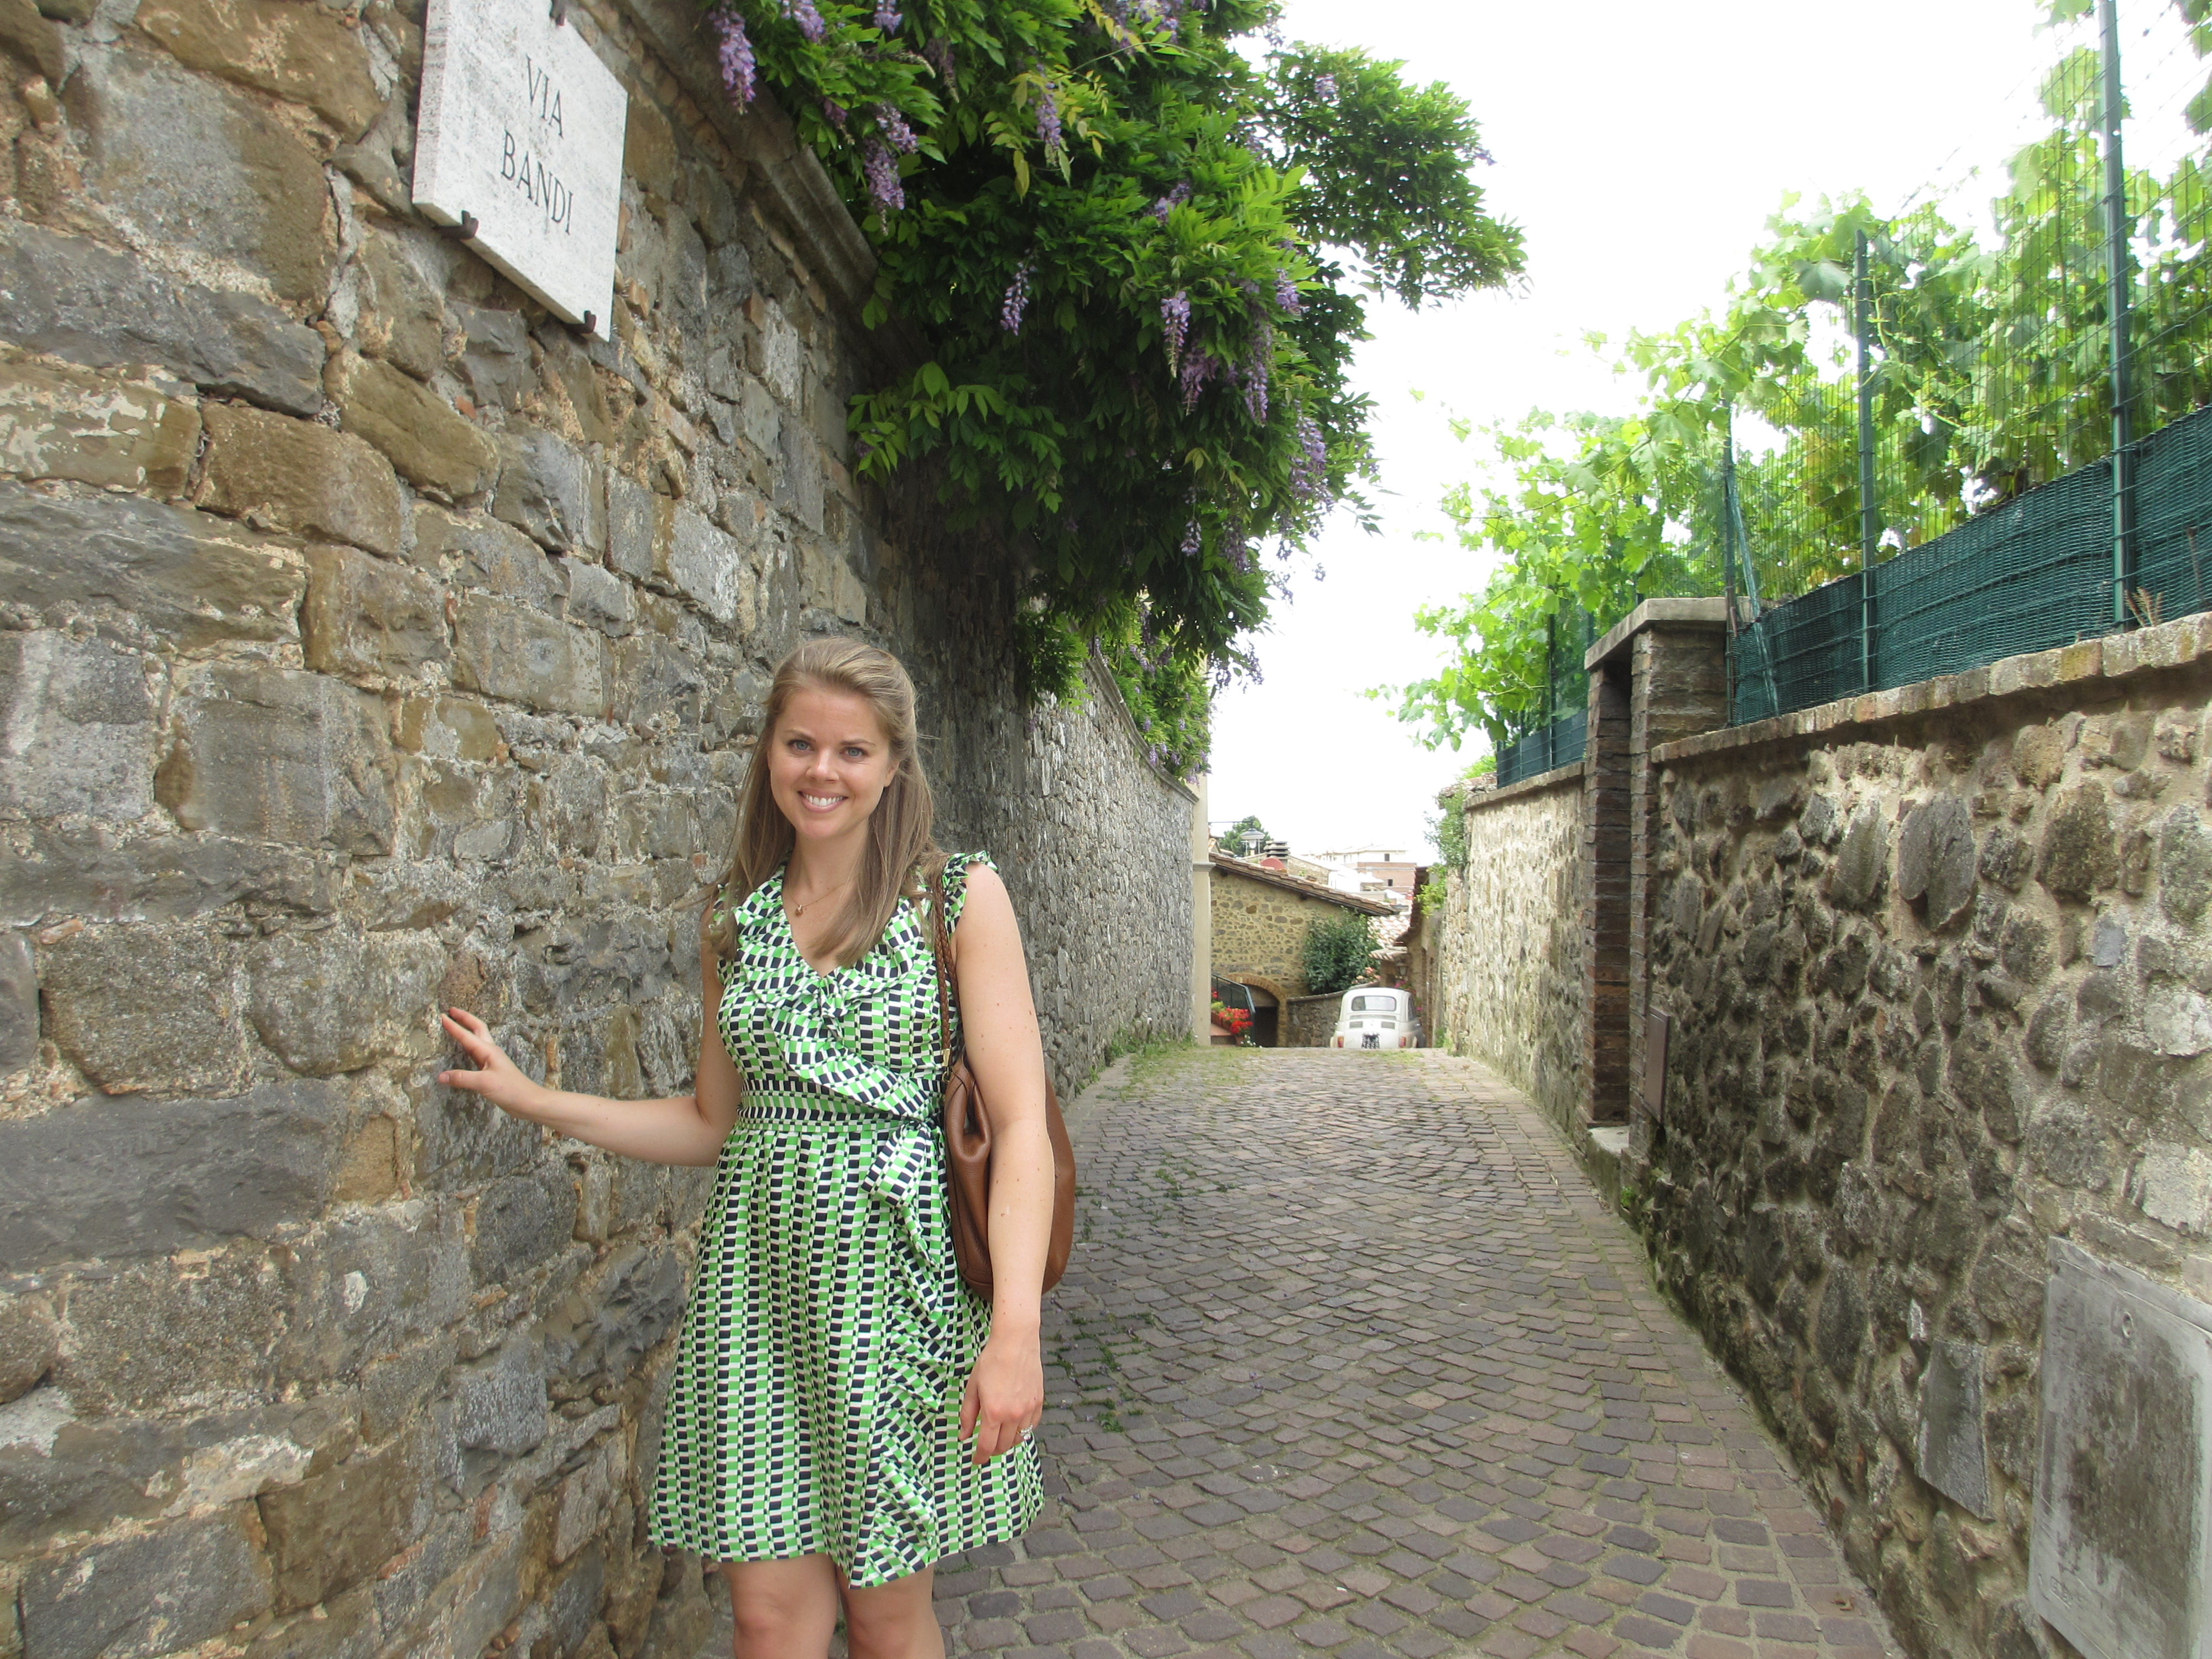 On the backstreets of Montalcino